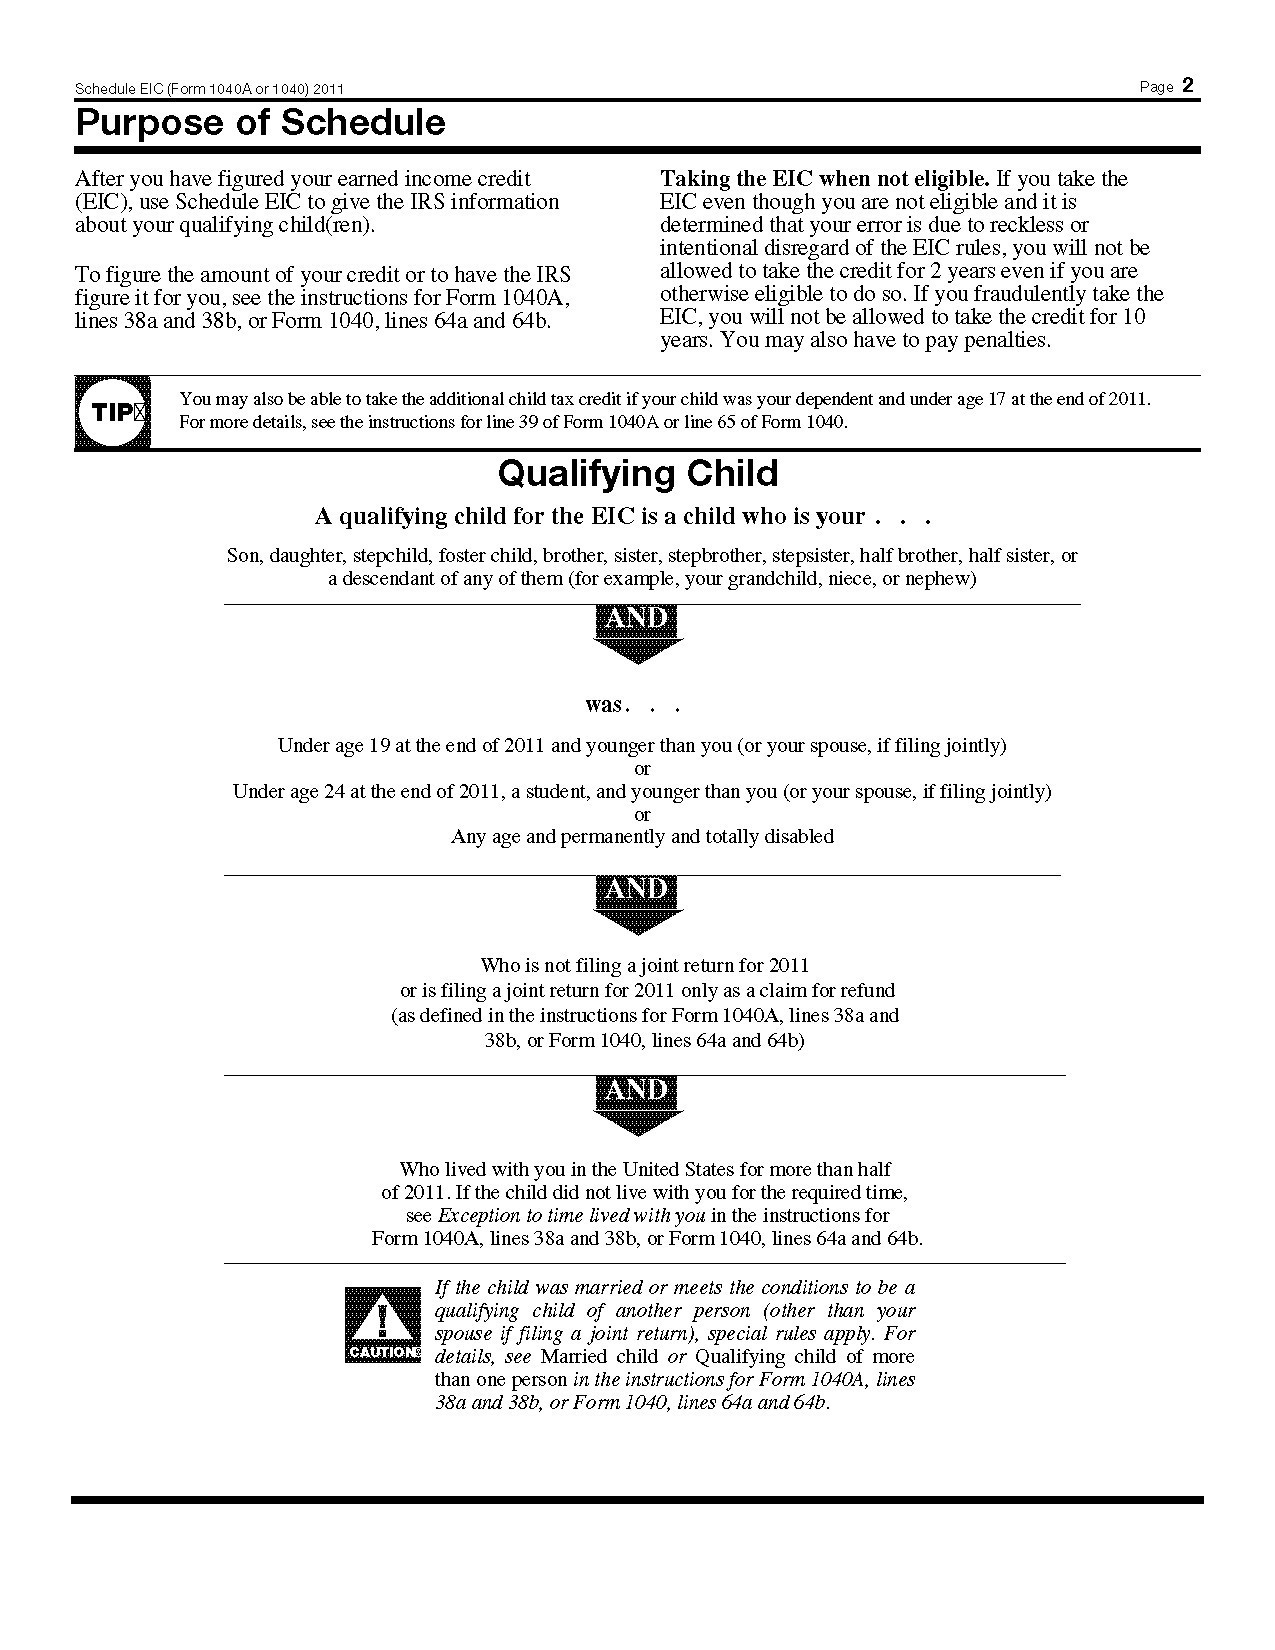 Charitable Donations Worksheet